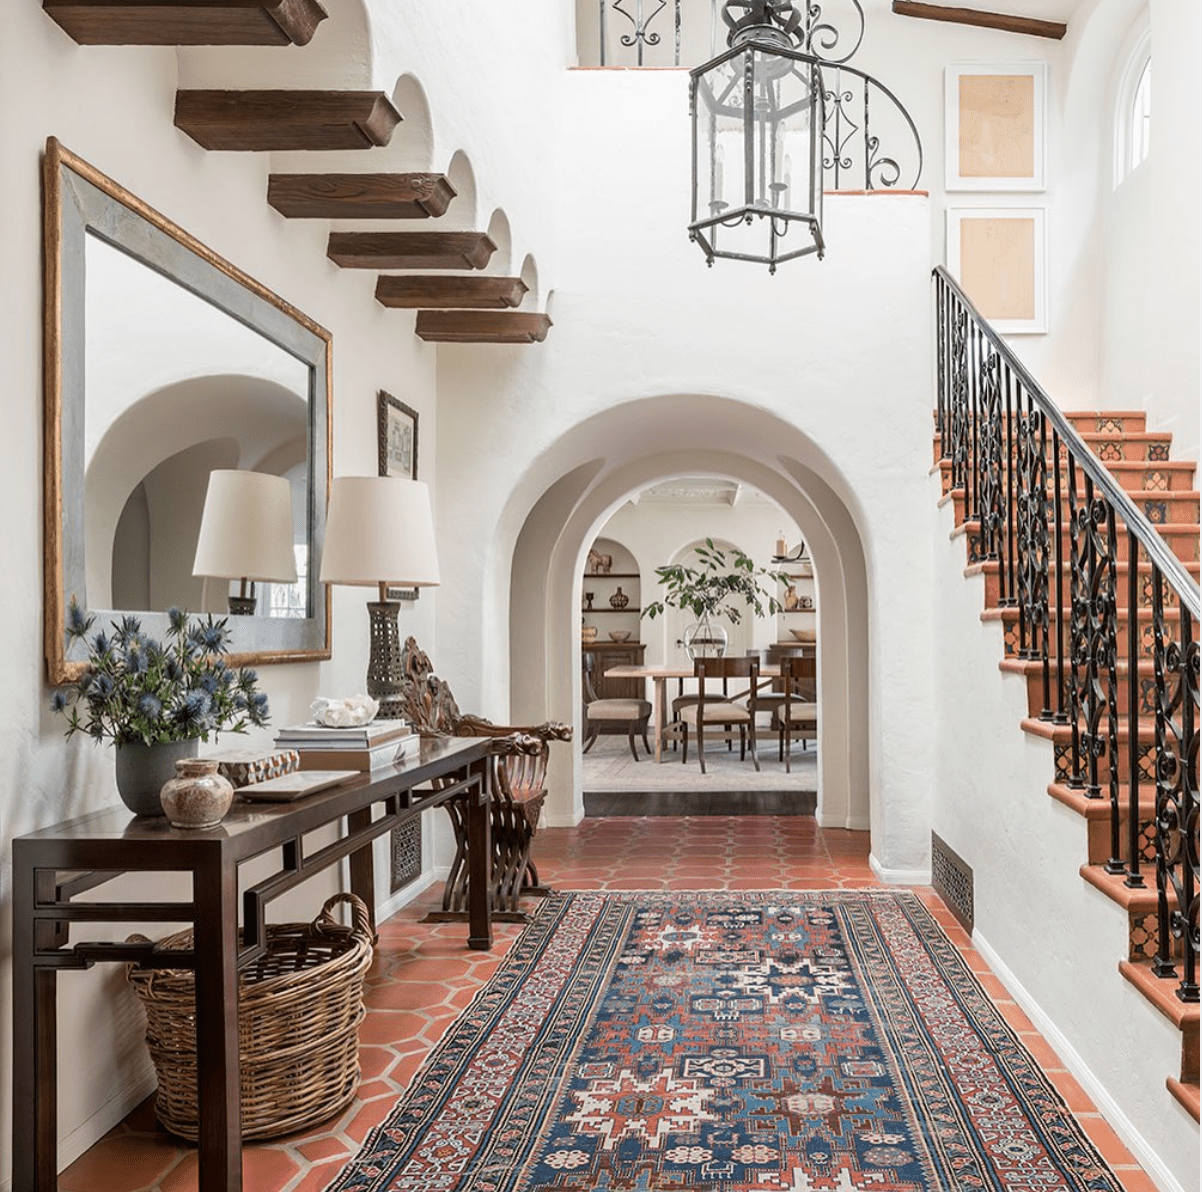 The interior of a Spanish Colonial home.